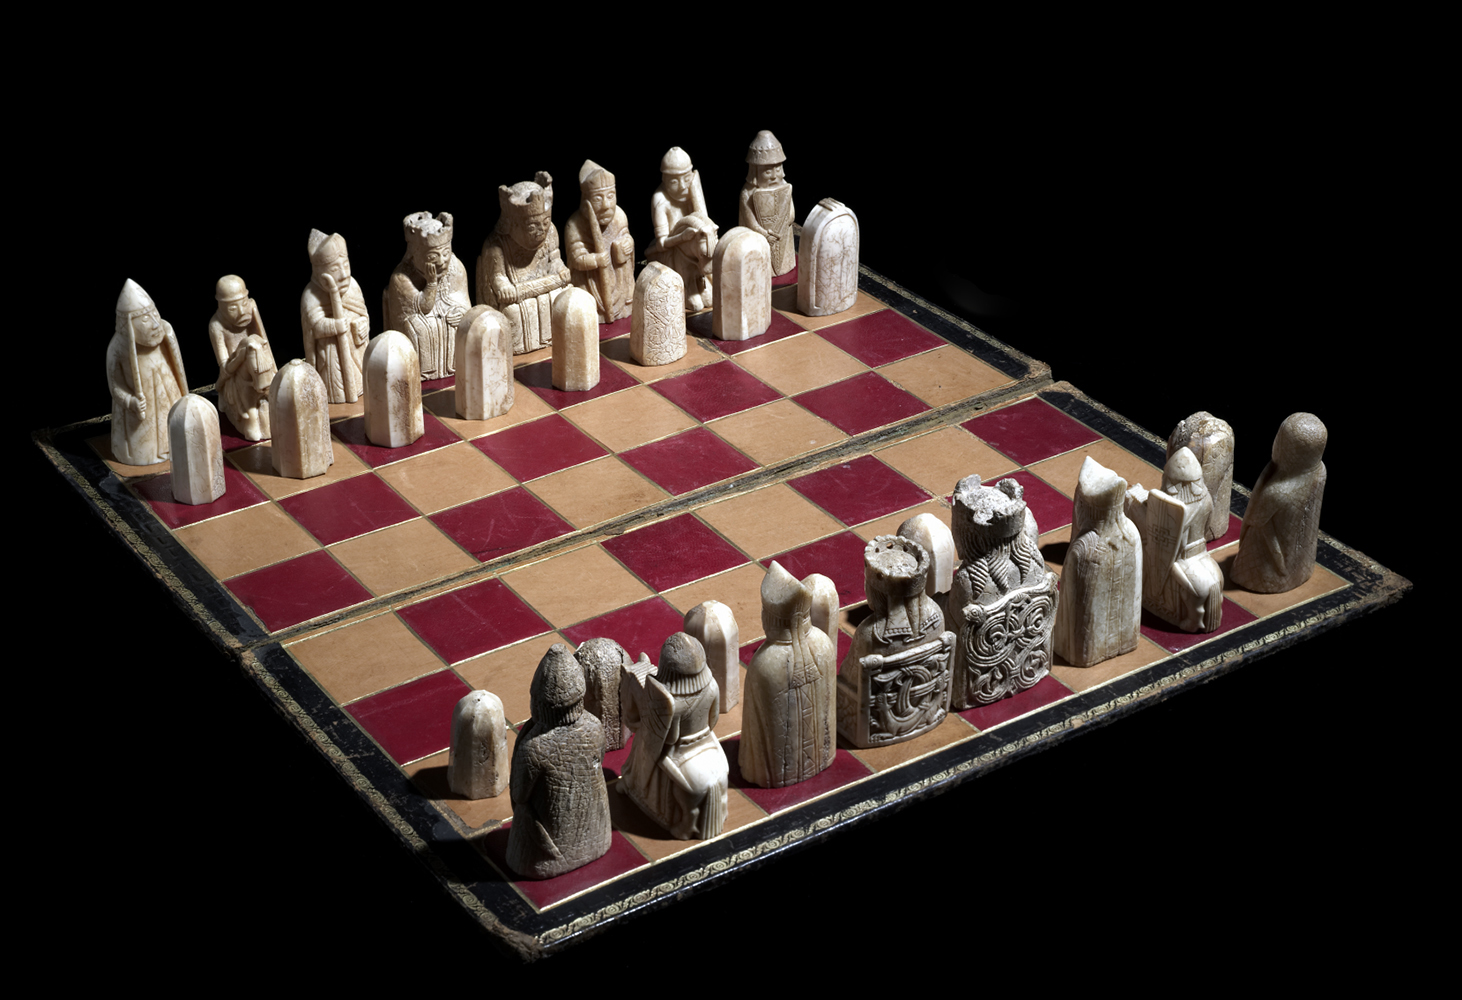 A photo of the Lewis Chessmen from above, showing the chess pieces standing on a red and cream chess board.